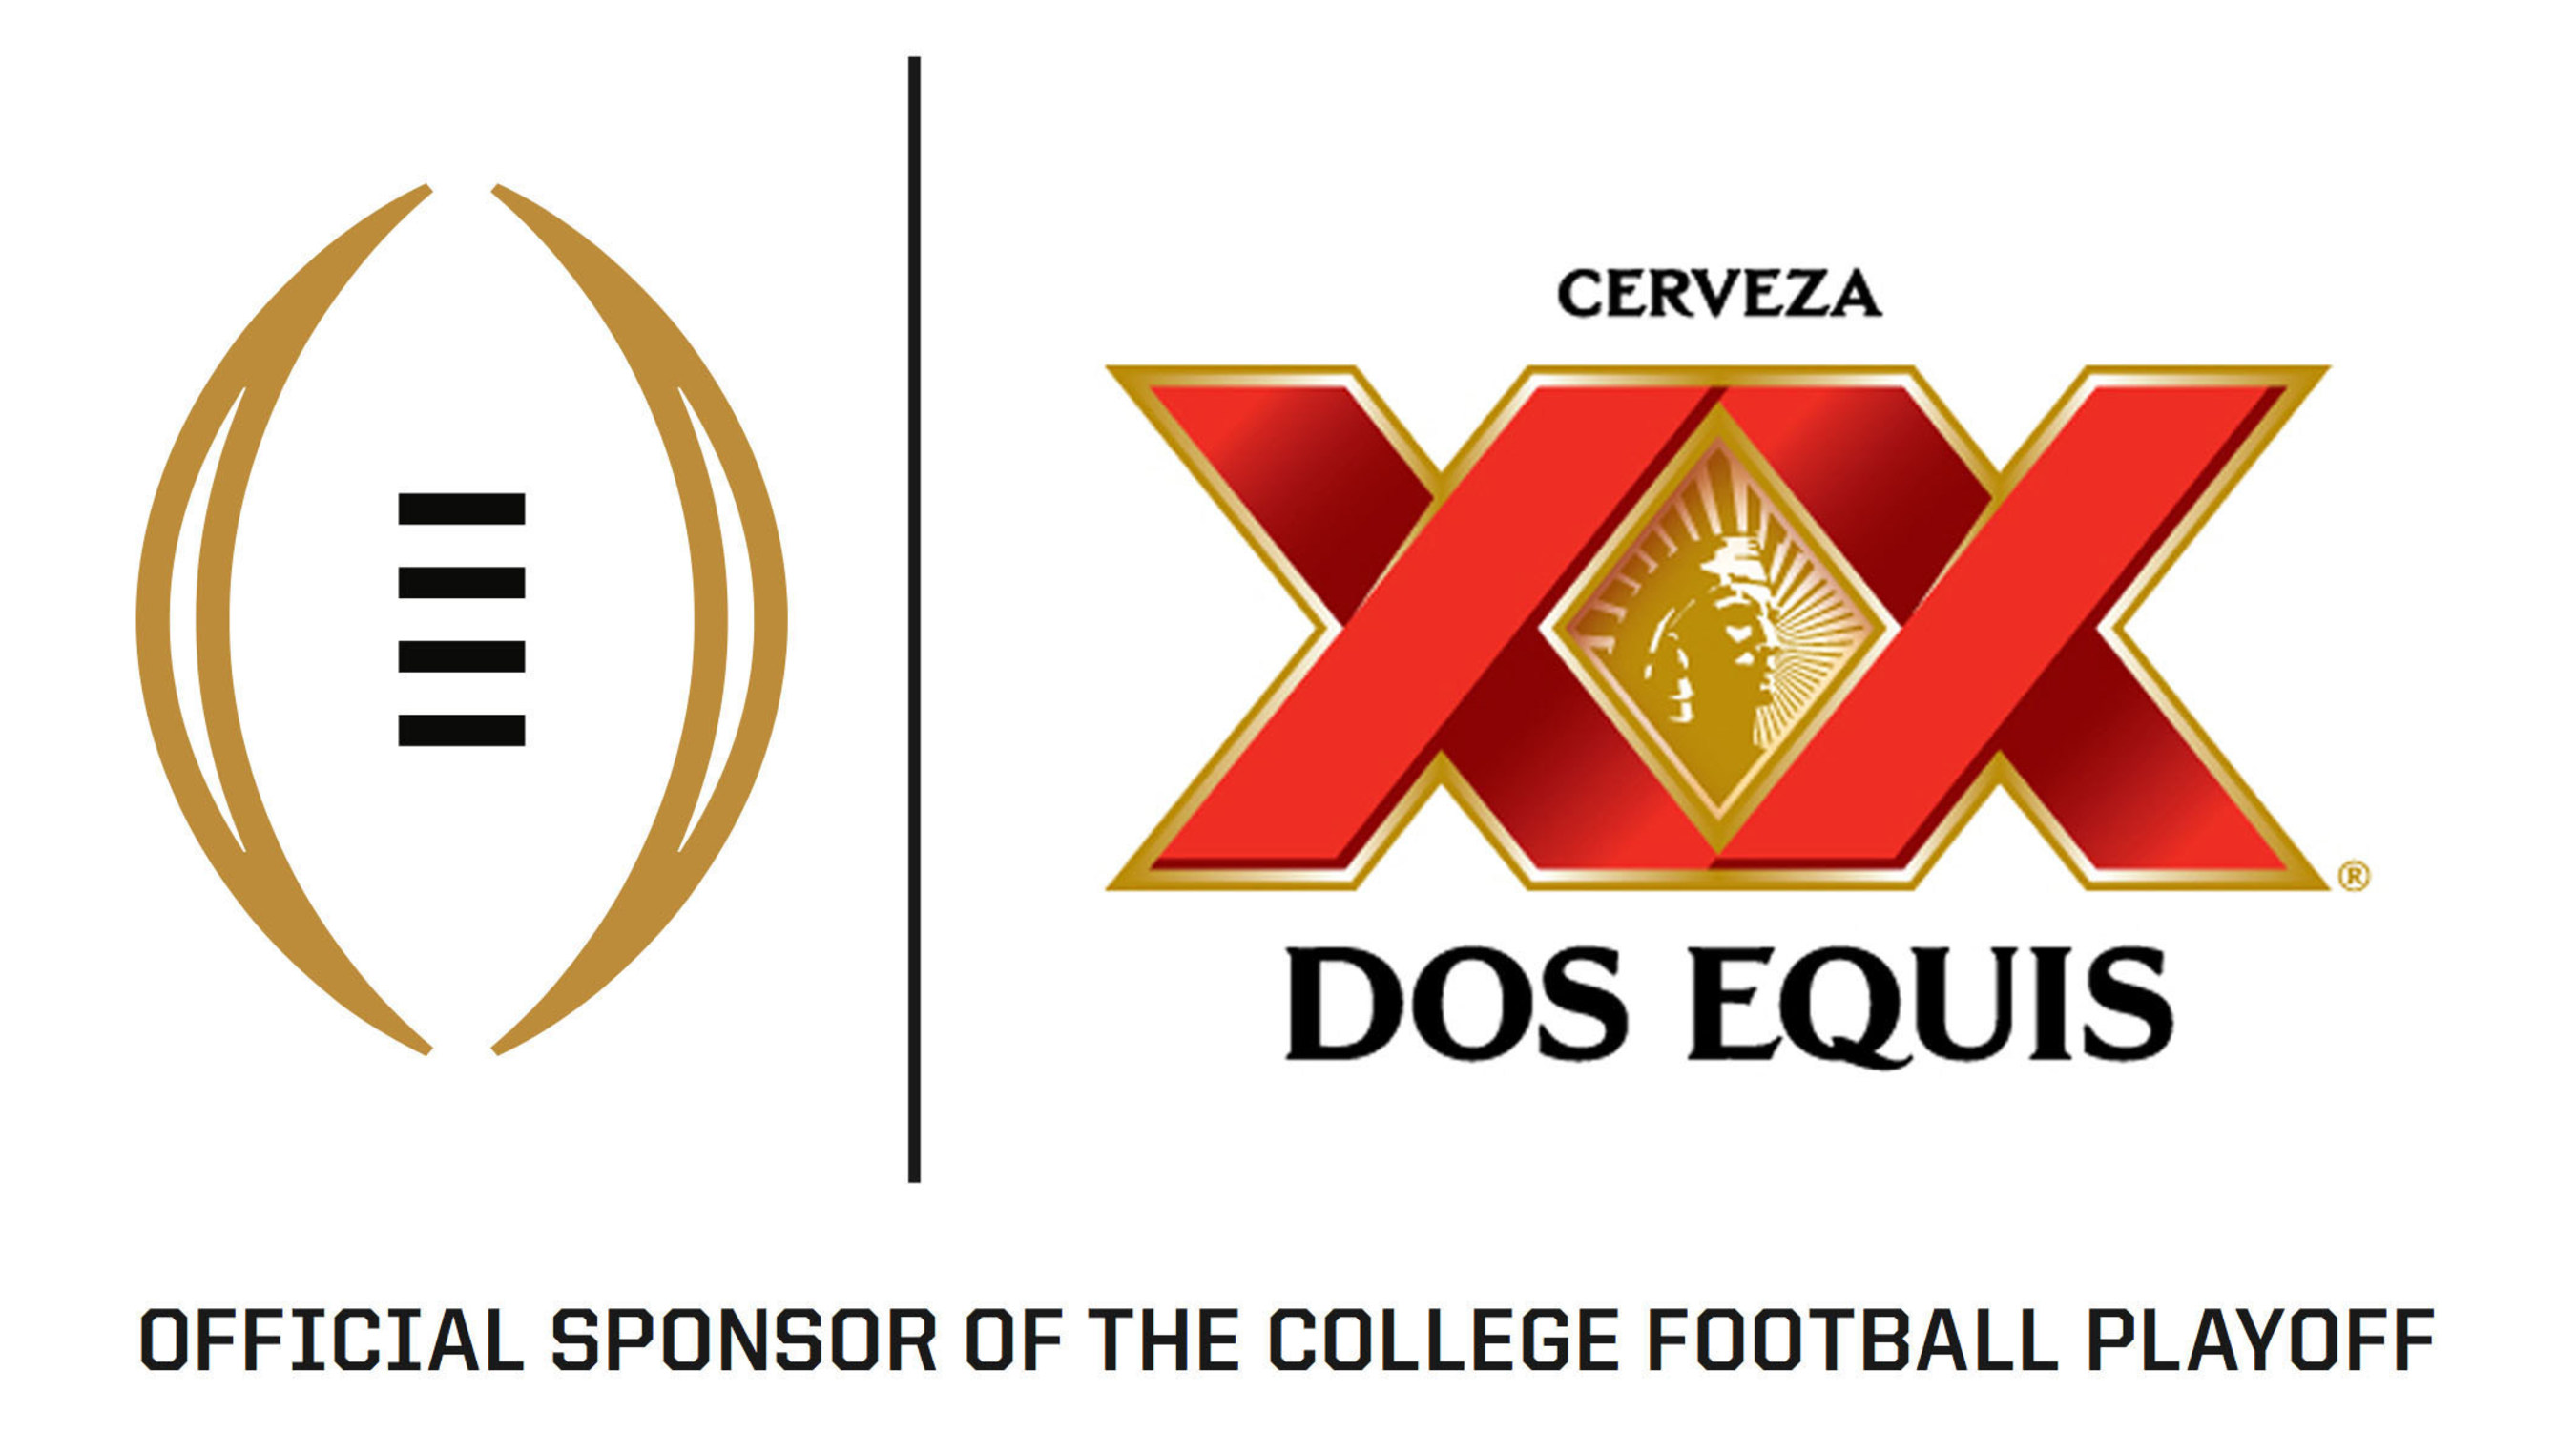 Dos Equis Becomes The Official Beer Sponsor Of College Football Playoff On ESPN